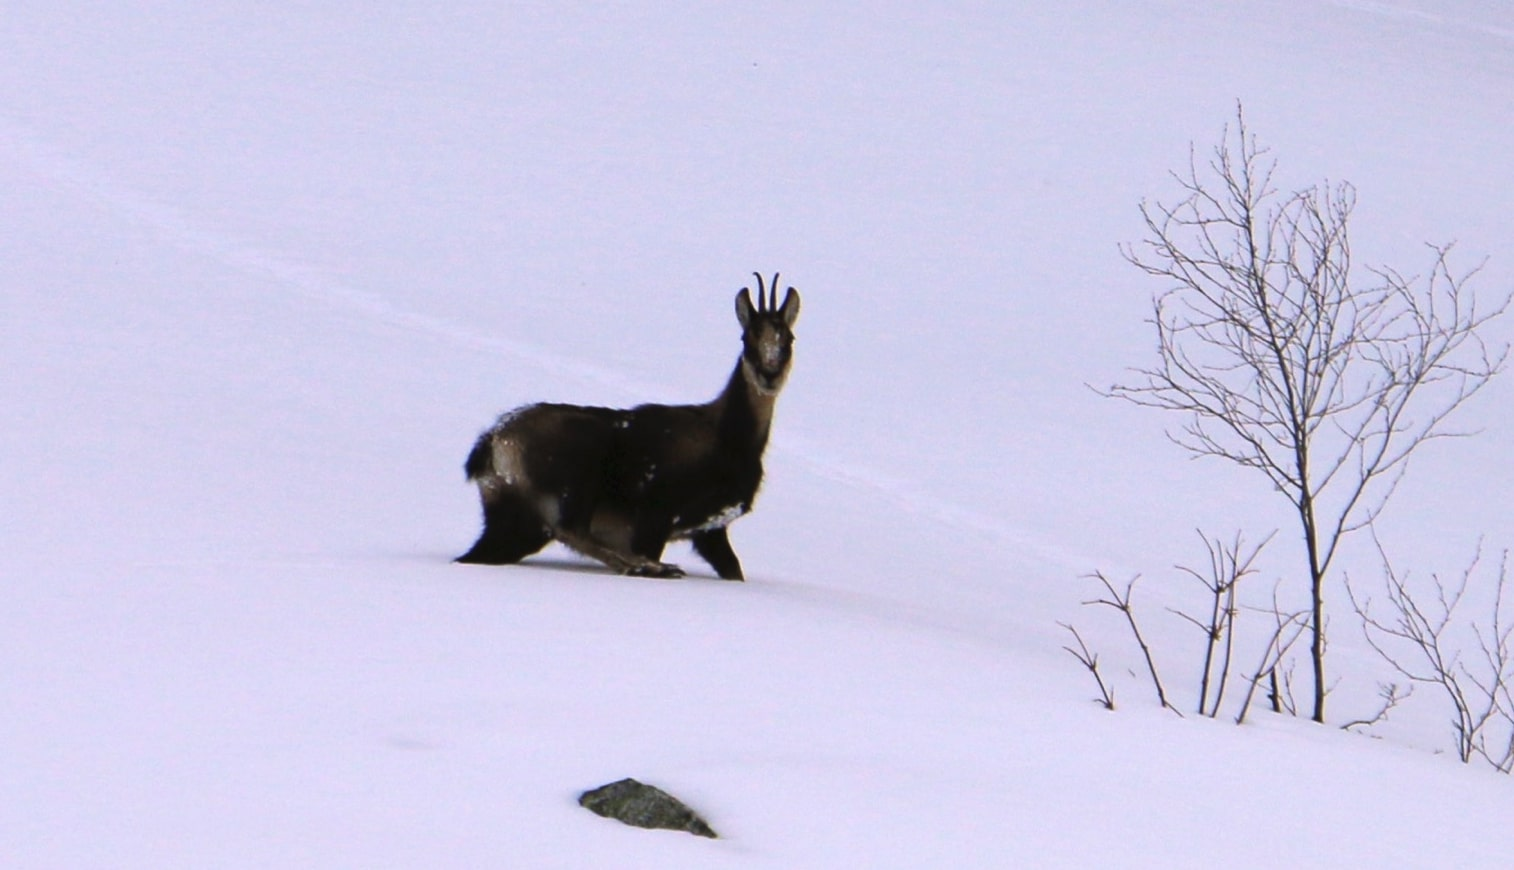 Chamois on the snow in the port of La Bonaigua.